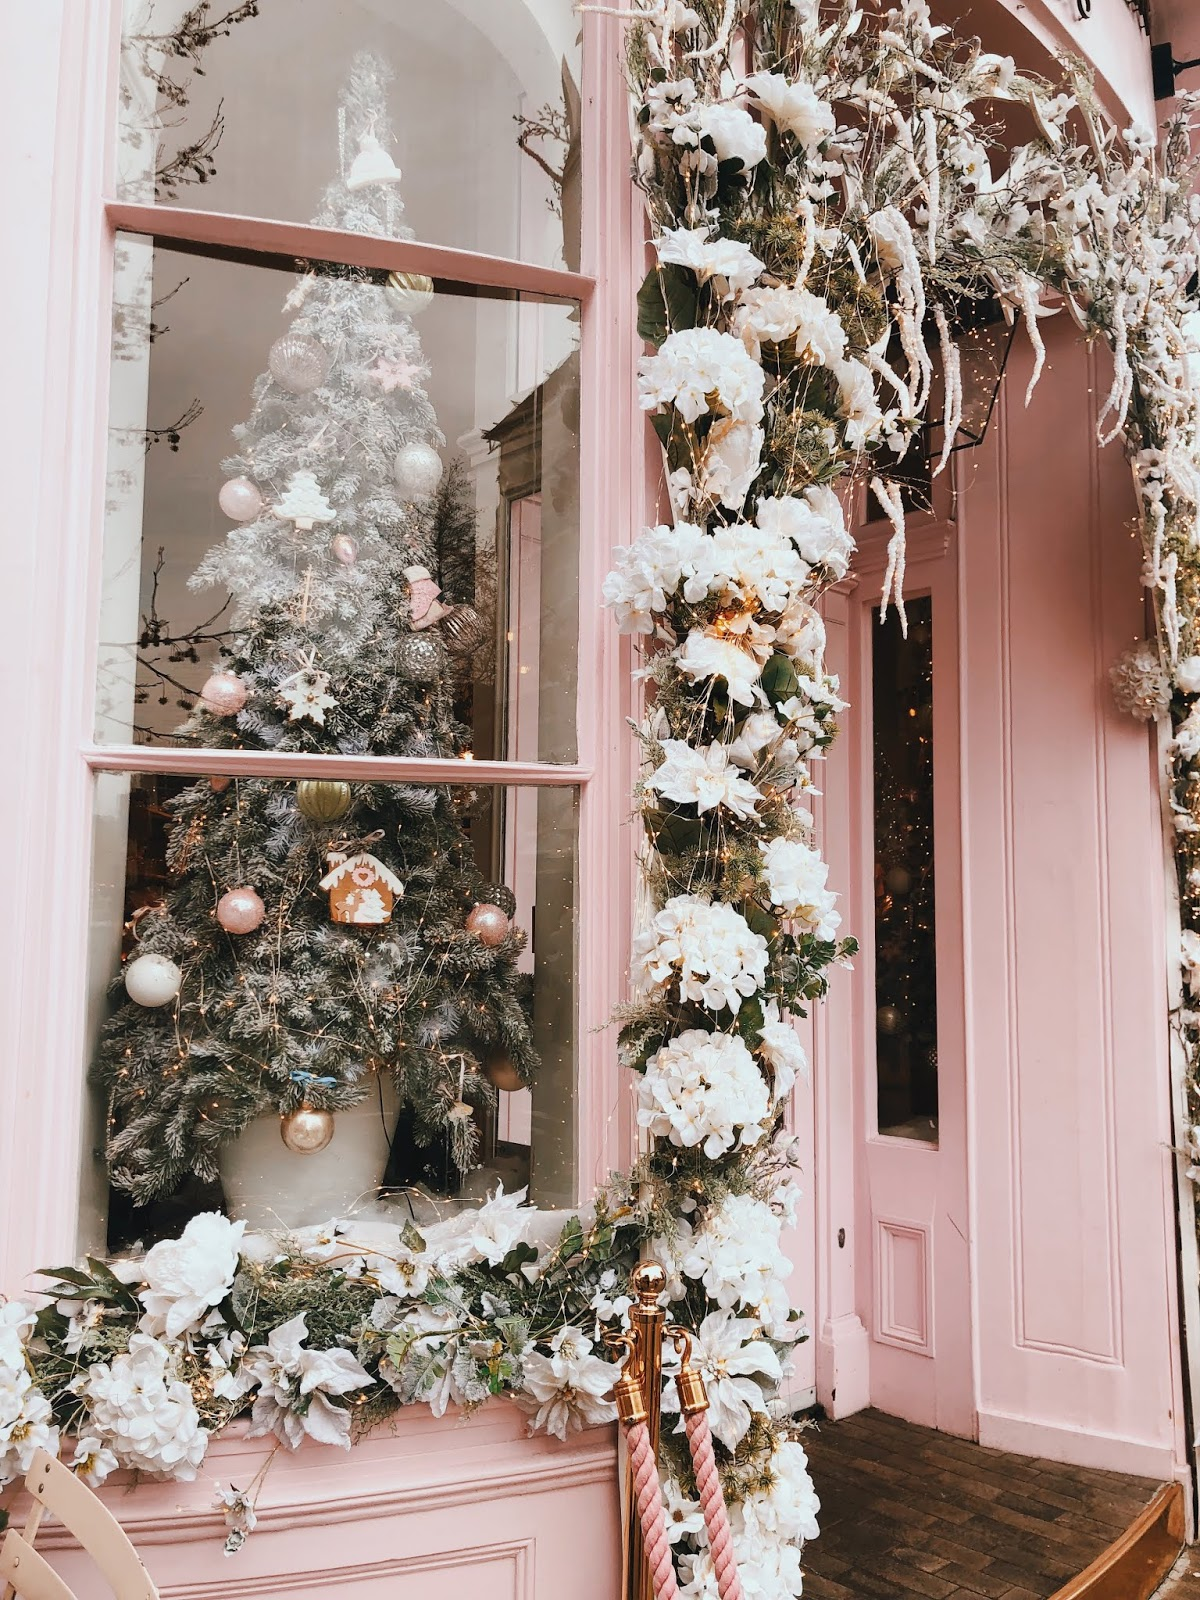 christmas in london, christmas decoration in london, christmas 2018, christmas decoration london 2018, indian blogger, london blogger, belgravia london, belgravia christmas decoration, le senteurs elizabeth street, elizabeth street london